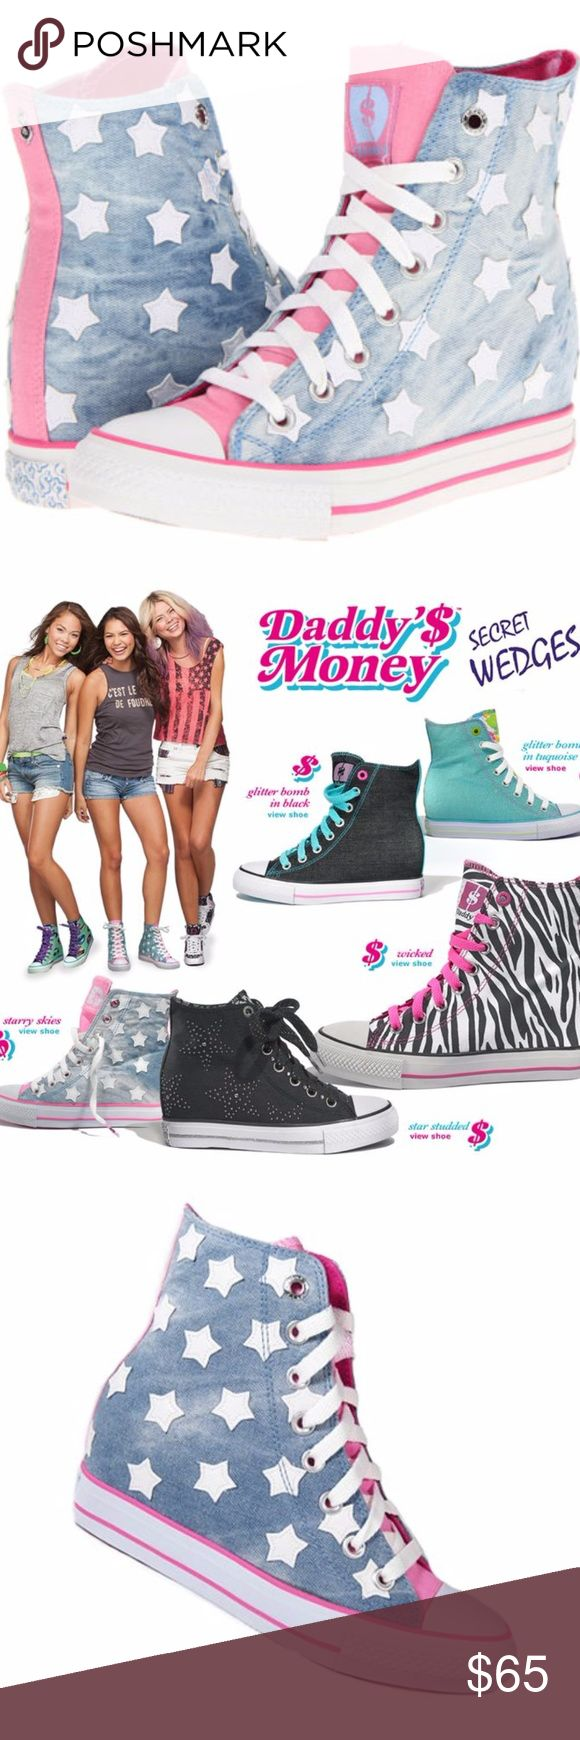 DADDYS MONEY **Starry Sky ** PRINT SECRET WEDGE $ SKETCHERS**DADDY'S MONEY Starry PRINT SECRET WEDGE  ***NEW IN BOX****NEVER WORN Great Present for Christmas or a present for you~* :) SUPER CUTE!!  High top fashion sport wedge sneakers.  Cool , eye catching Starry Sky print!  Brand:SkechersColor: Soft Pastel US Shoe Size (Women's):8Heel Type:Wedge Style:Fashion sneakersPattern: Soft Denim And Stars Material:CanvasFastening:Lace Up Heel Height:Med (1 3/4 in. to 2 3/4 in.) Shoes…